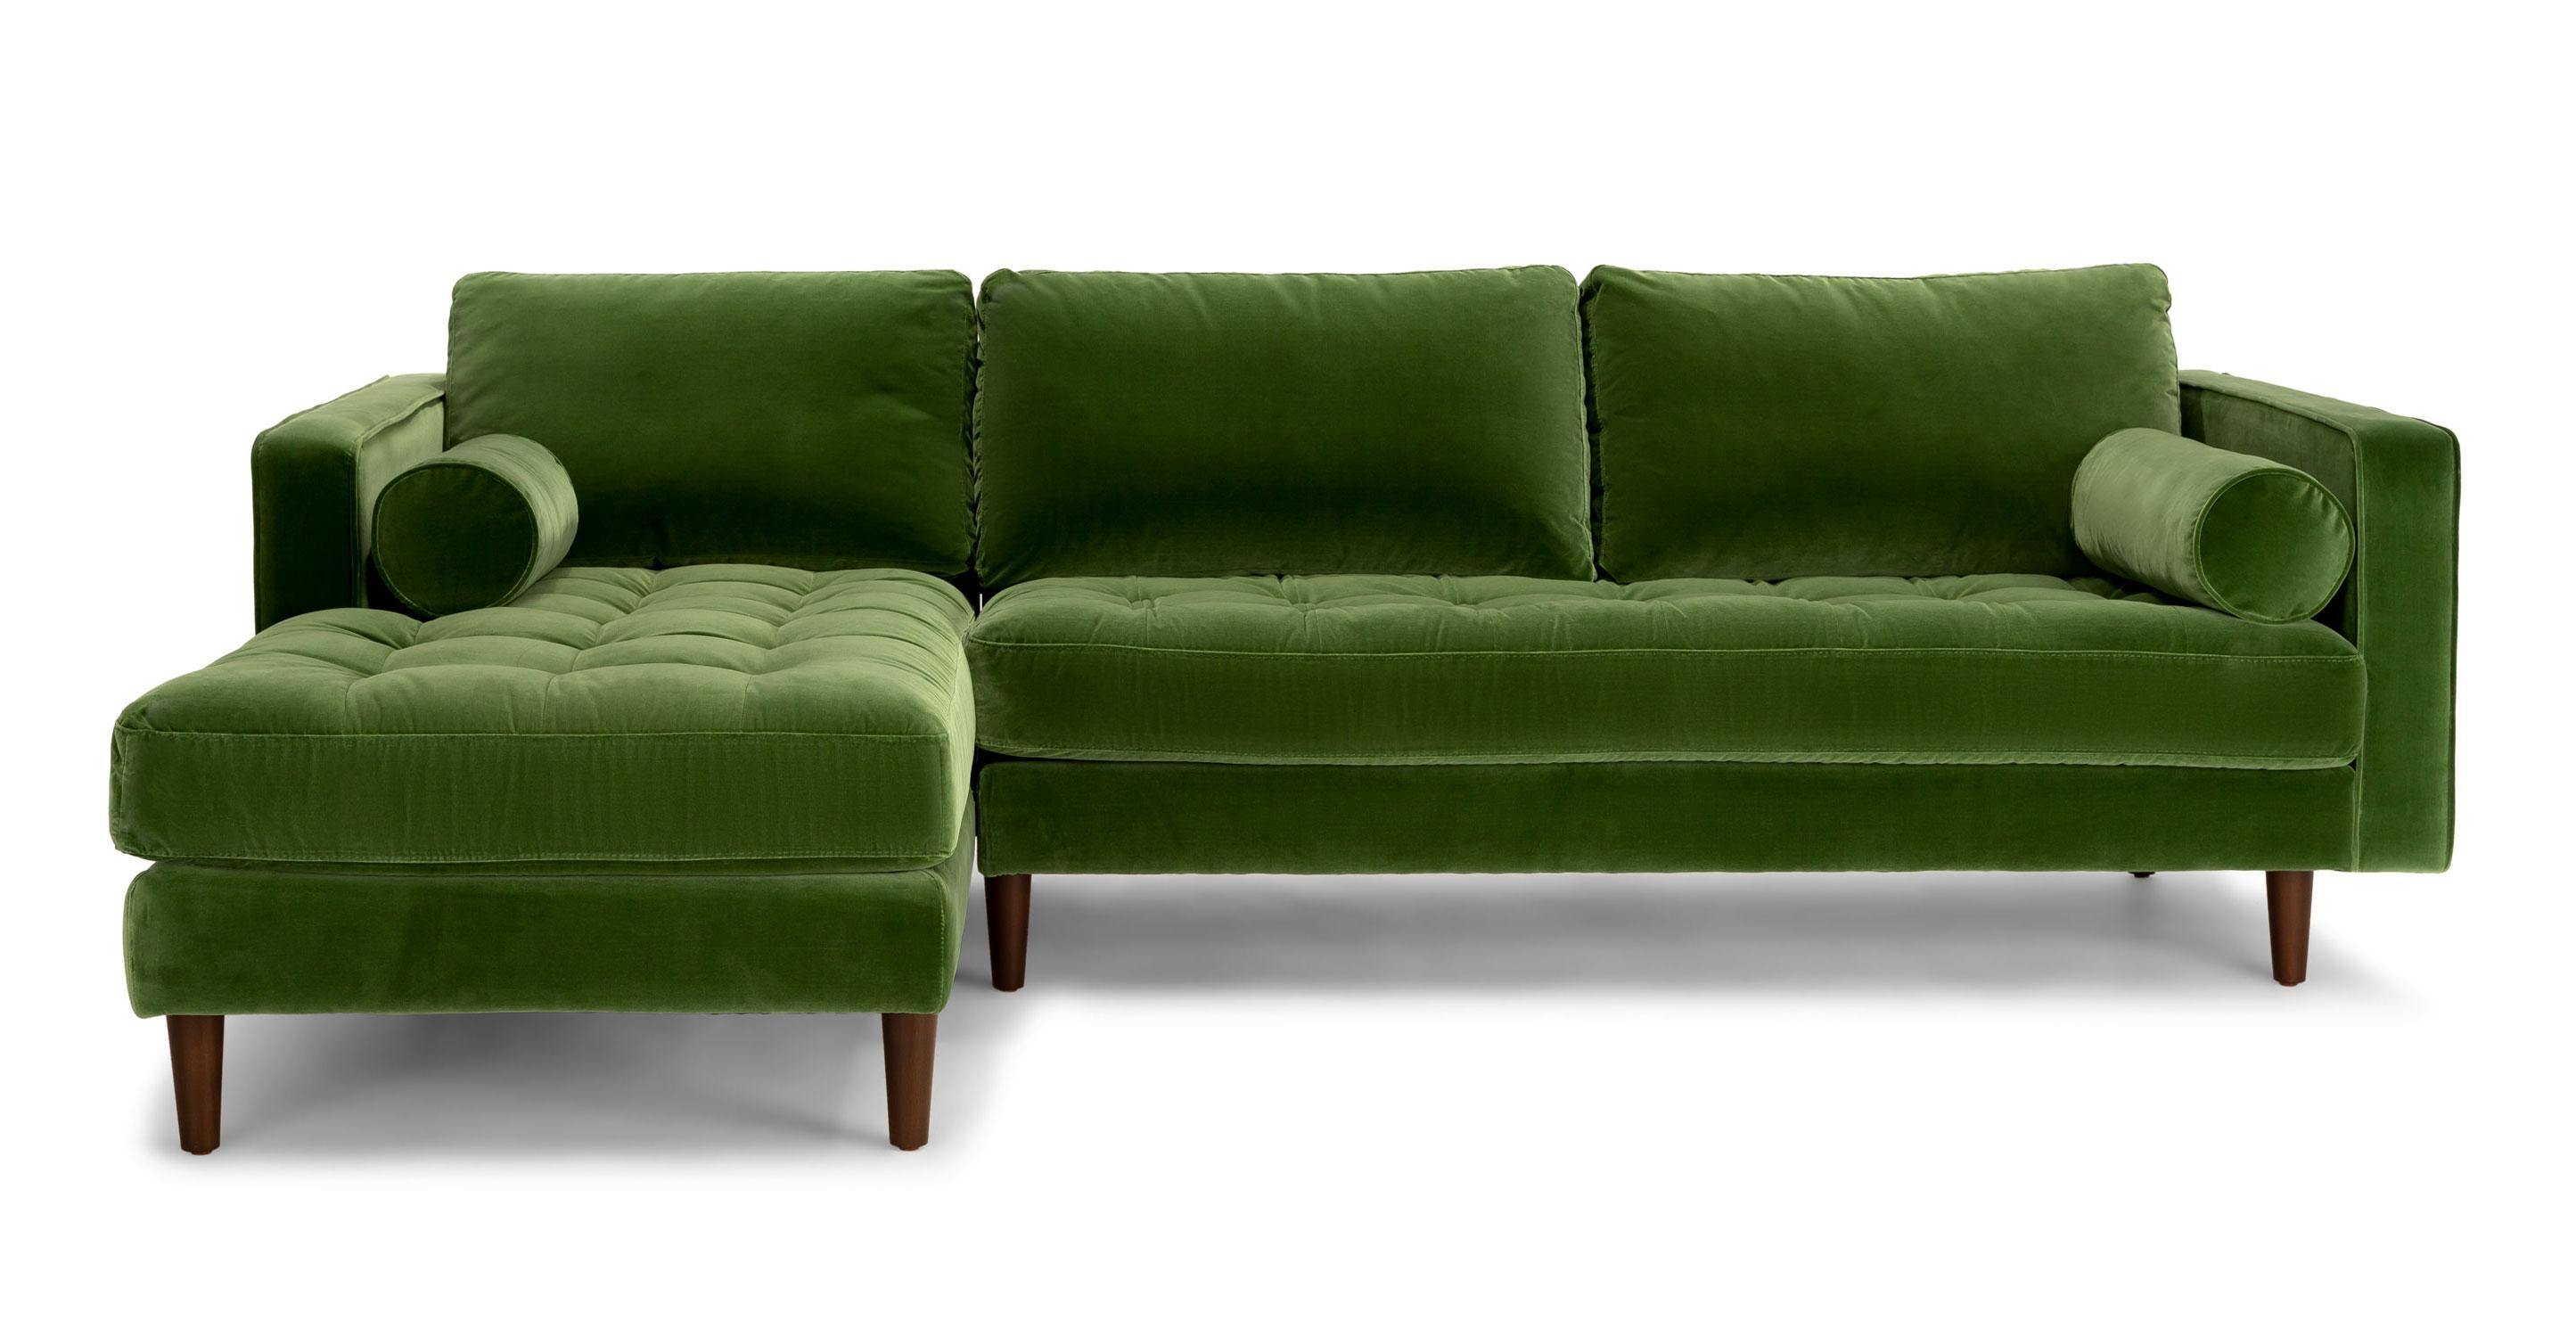 Sofas Center : Unique Green Velvet Sofa Pictures Inspirations For Green Sofas (View 10 of 20)